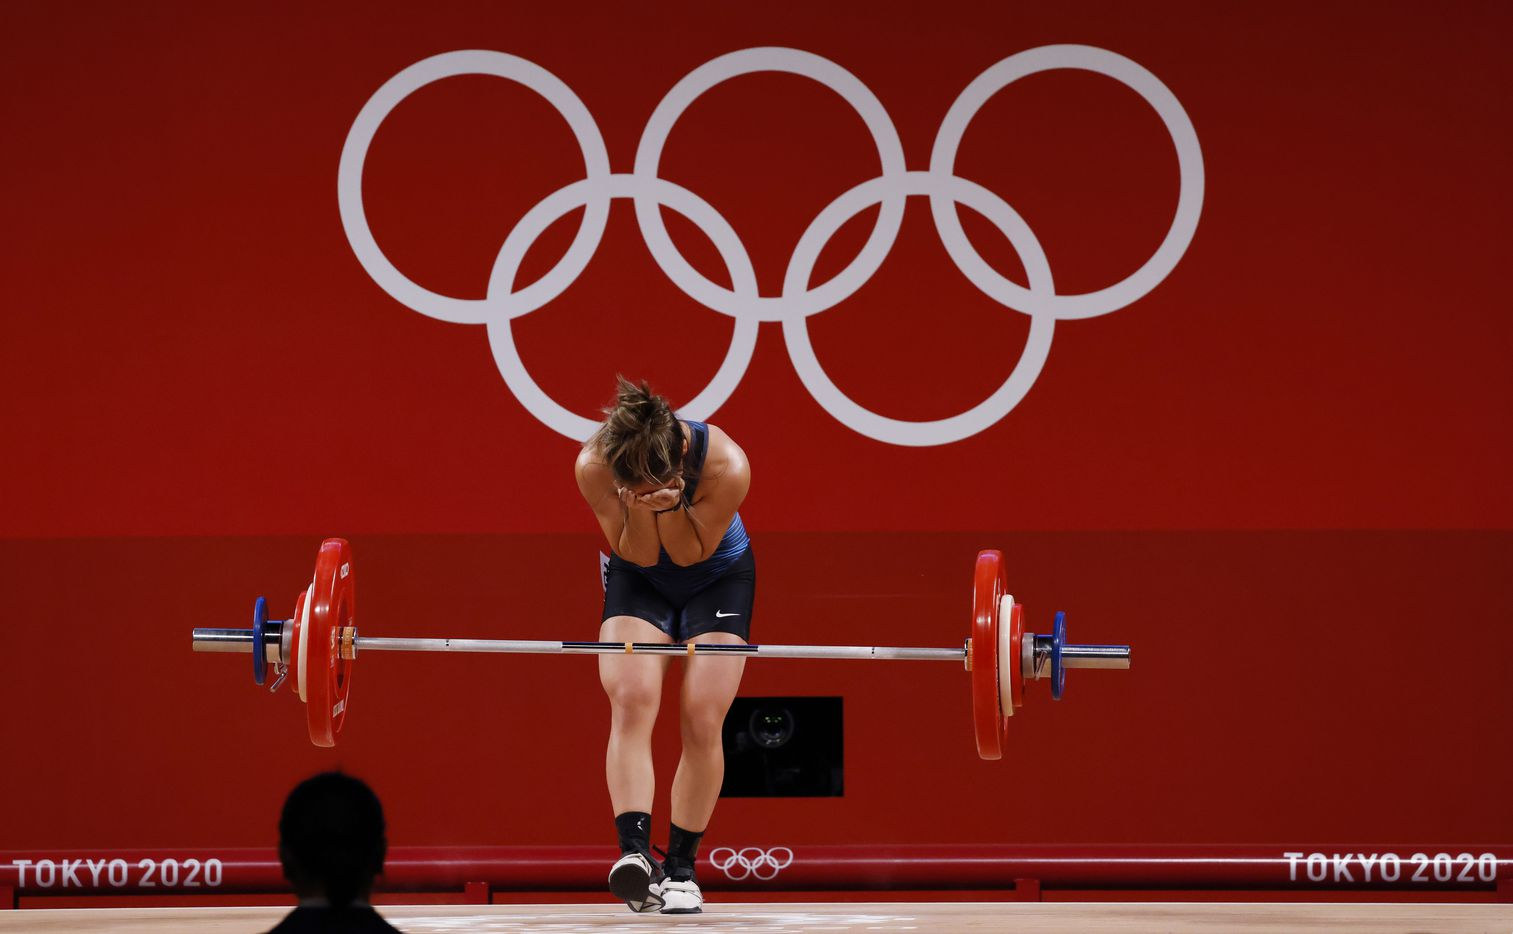 USA's Jourdan Delacruz attempts to lift 89kg on her third attempt of the snatch round during the women's 49 kg weightlifting final  during the postponed 2020 Tokyo Olympics at Tokyo International Forum on Saturday, July 24, 2021, in Tokyo, Japan. Delacruz received a no-lift from the judges on this lift. (Vernon Bryant/The Dallas Morning News)